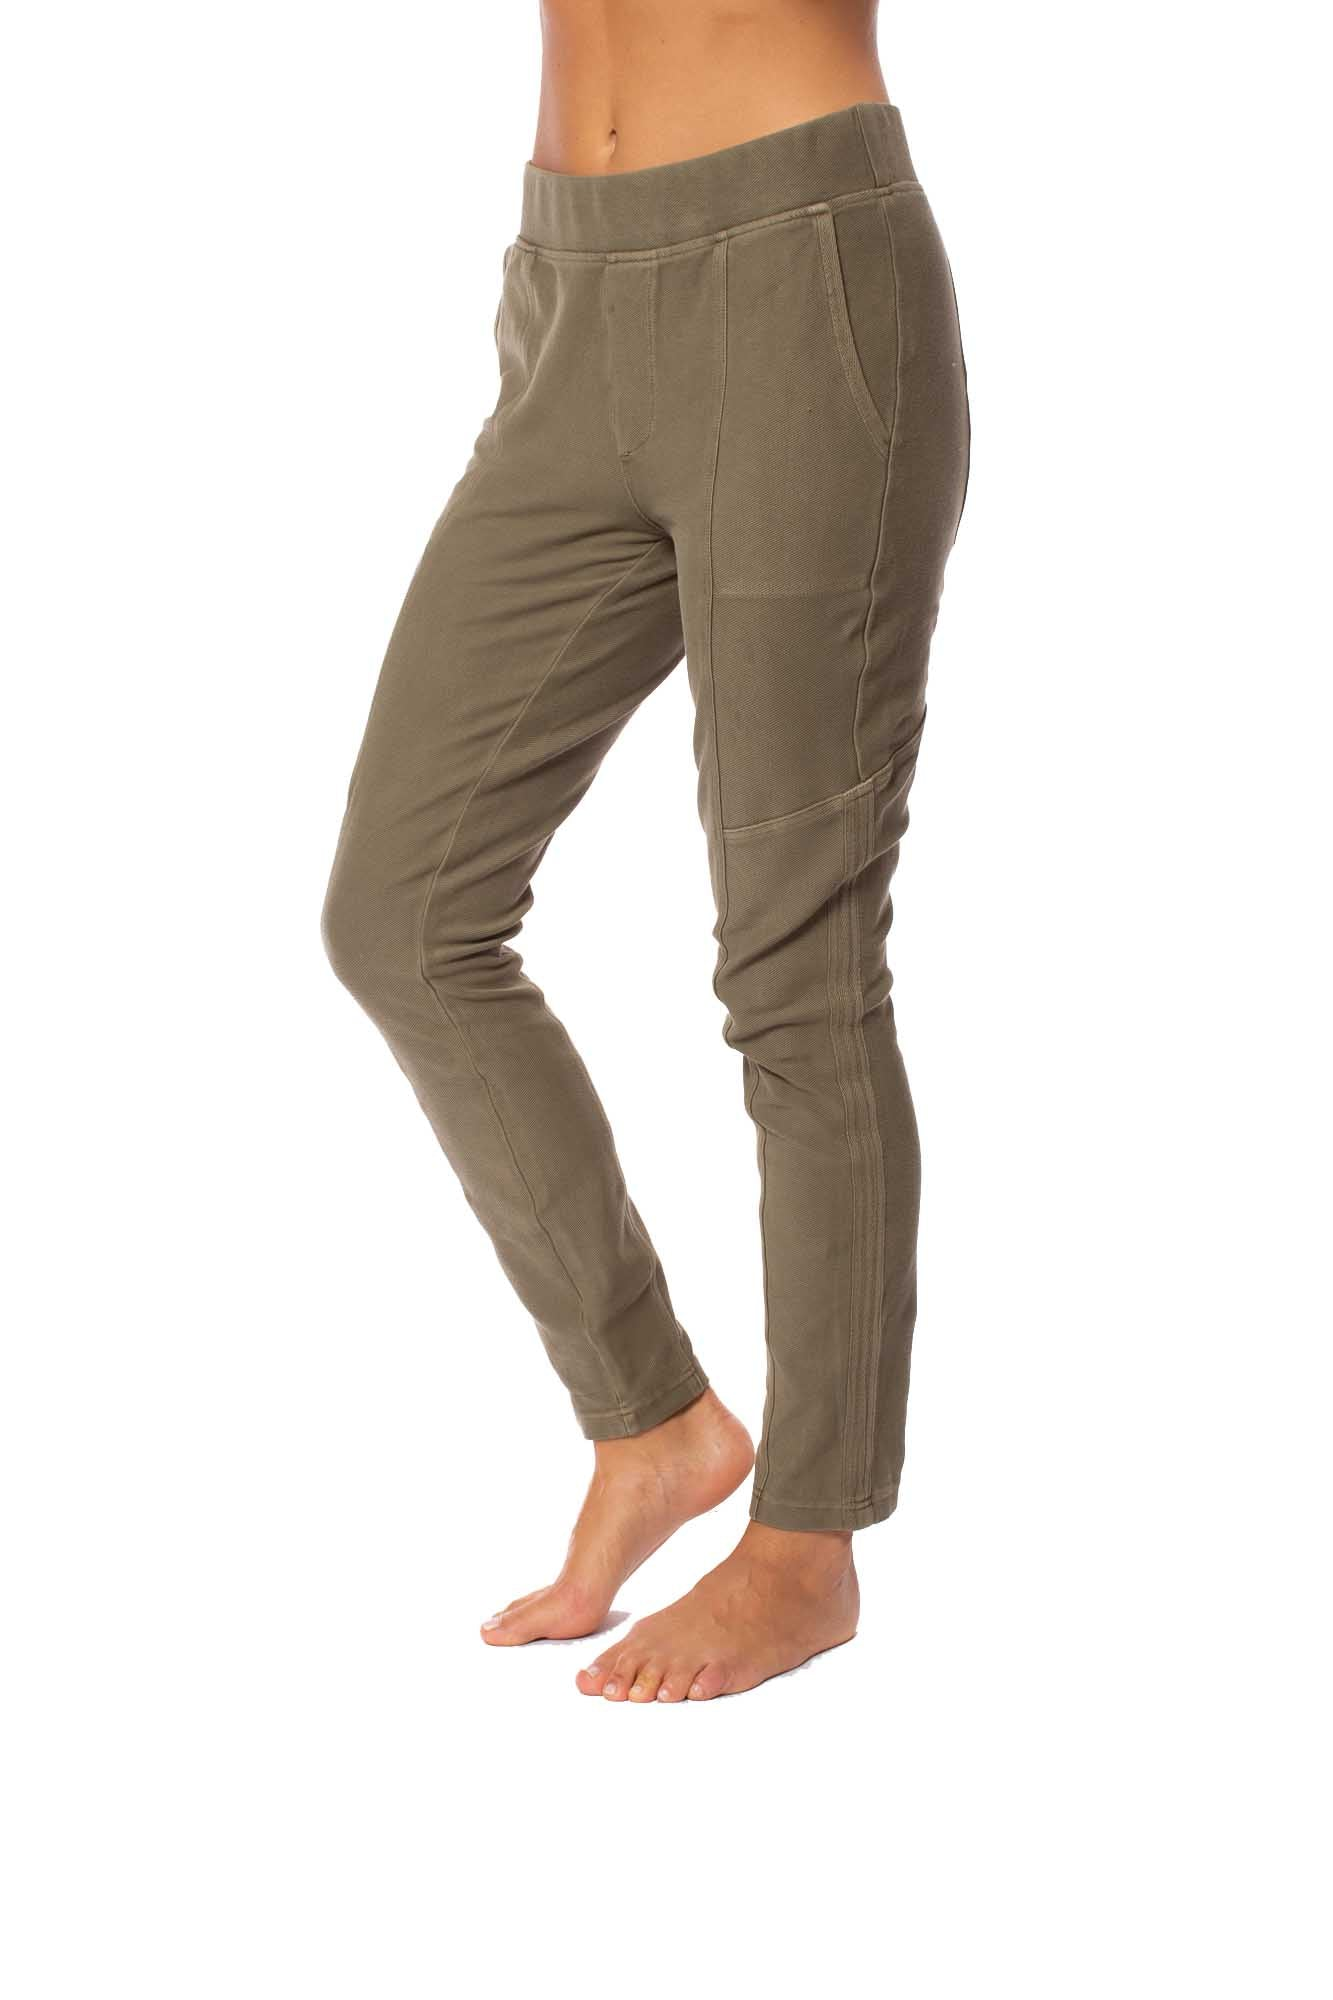 XCVI - Pull On Elastic Band Two Pocket Sullivan Pants (22456, Fatigues)